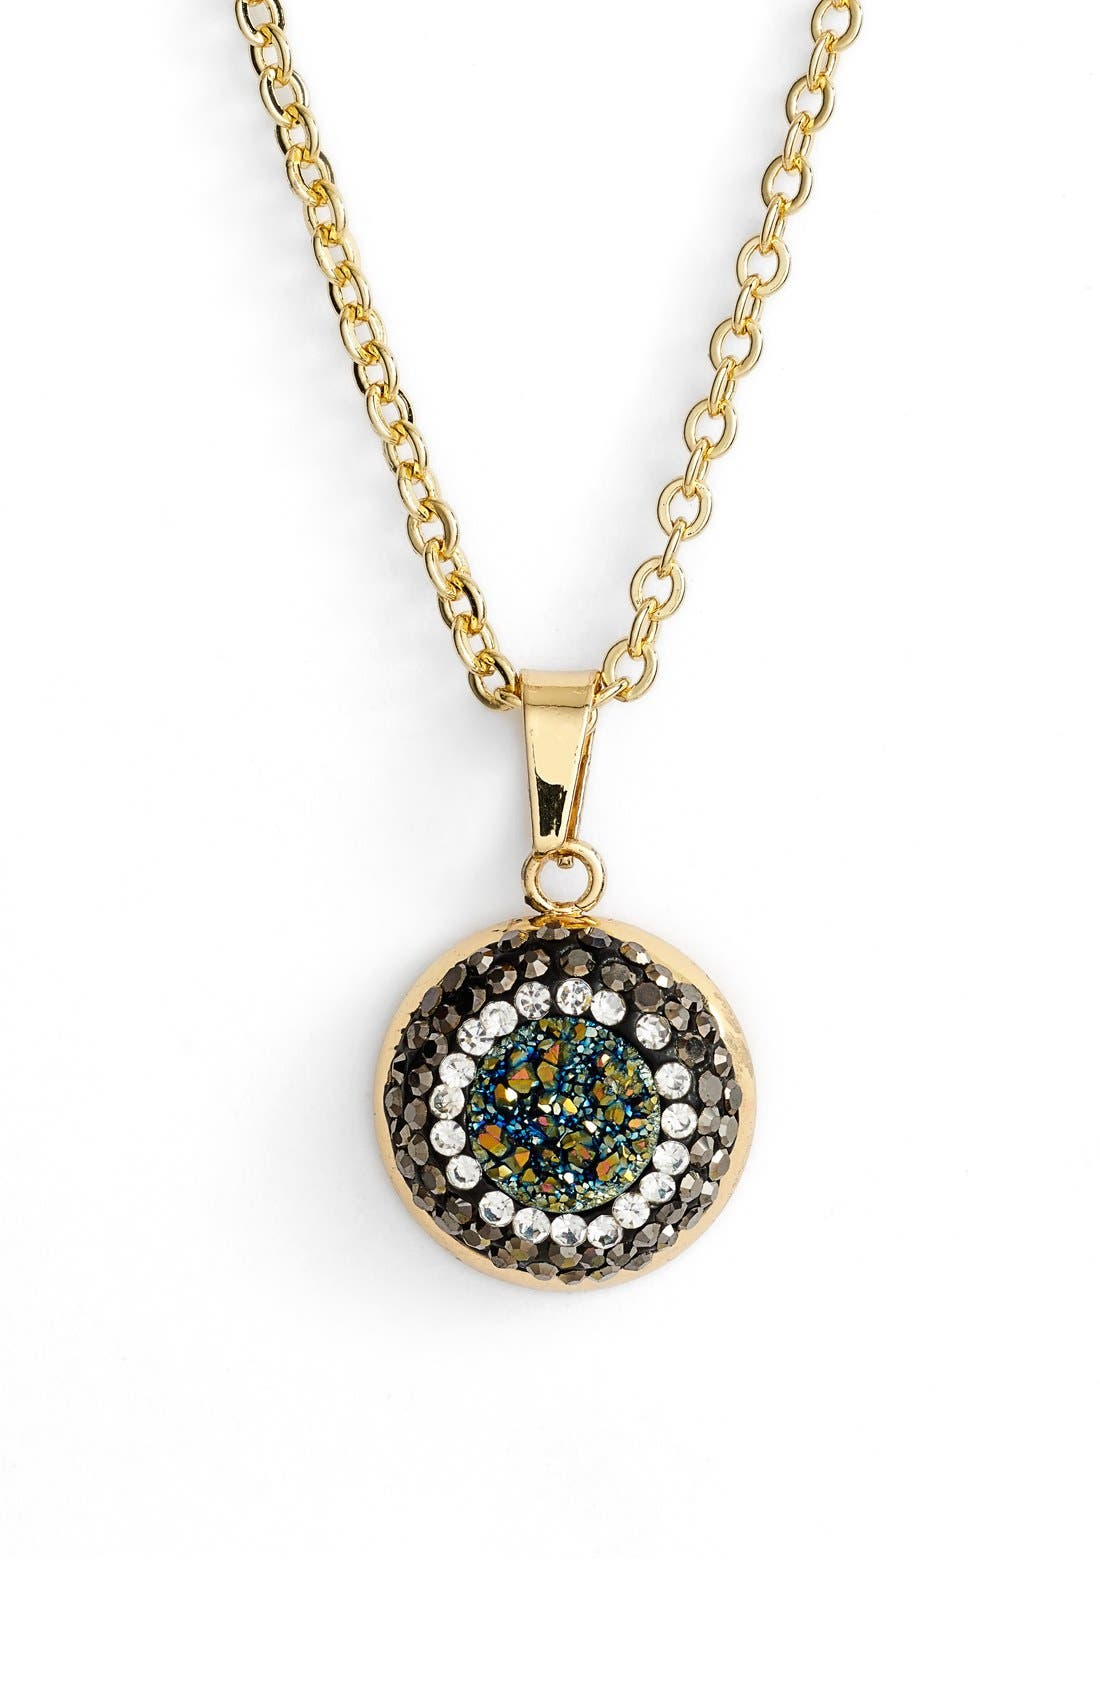 ELISE M. 'Aria' Pendant Necklace